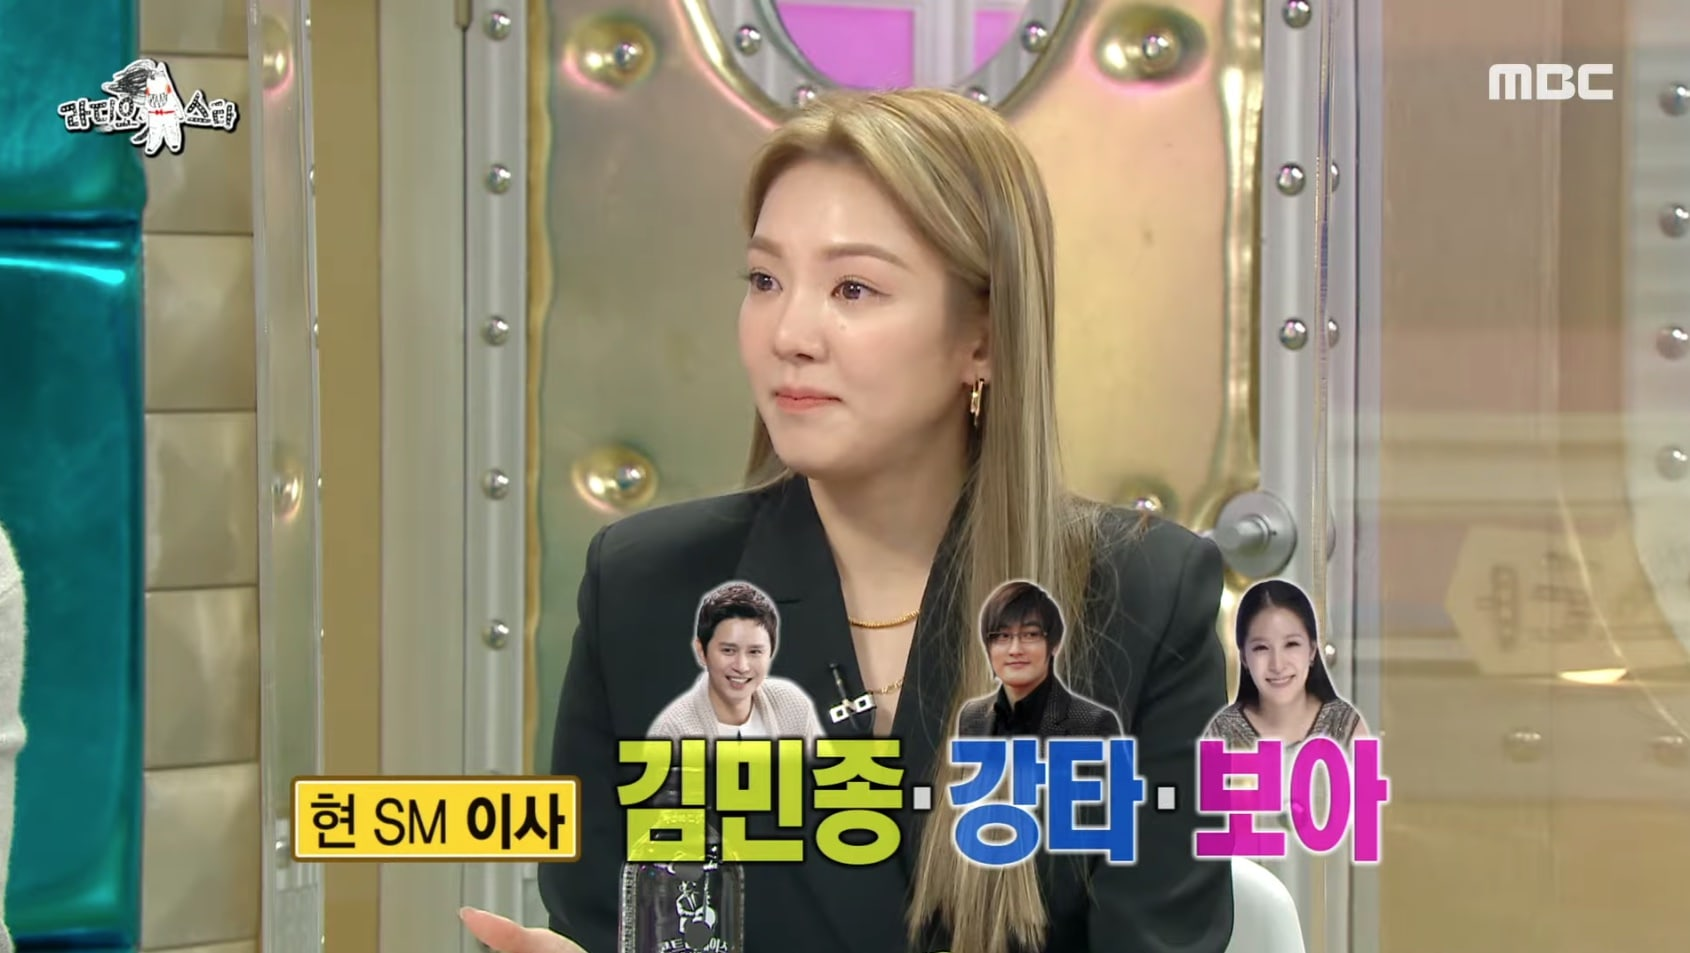 """Radio star"": Hyoyeon speaks about the impact COVID-19 will have on her work as a DJ"